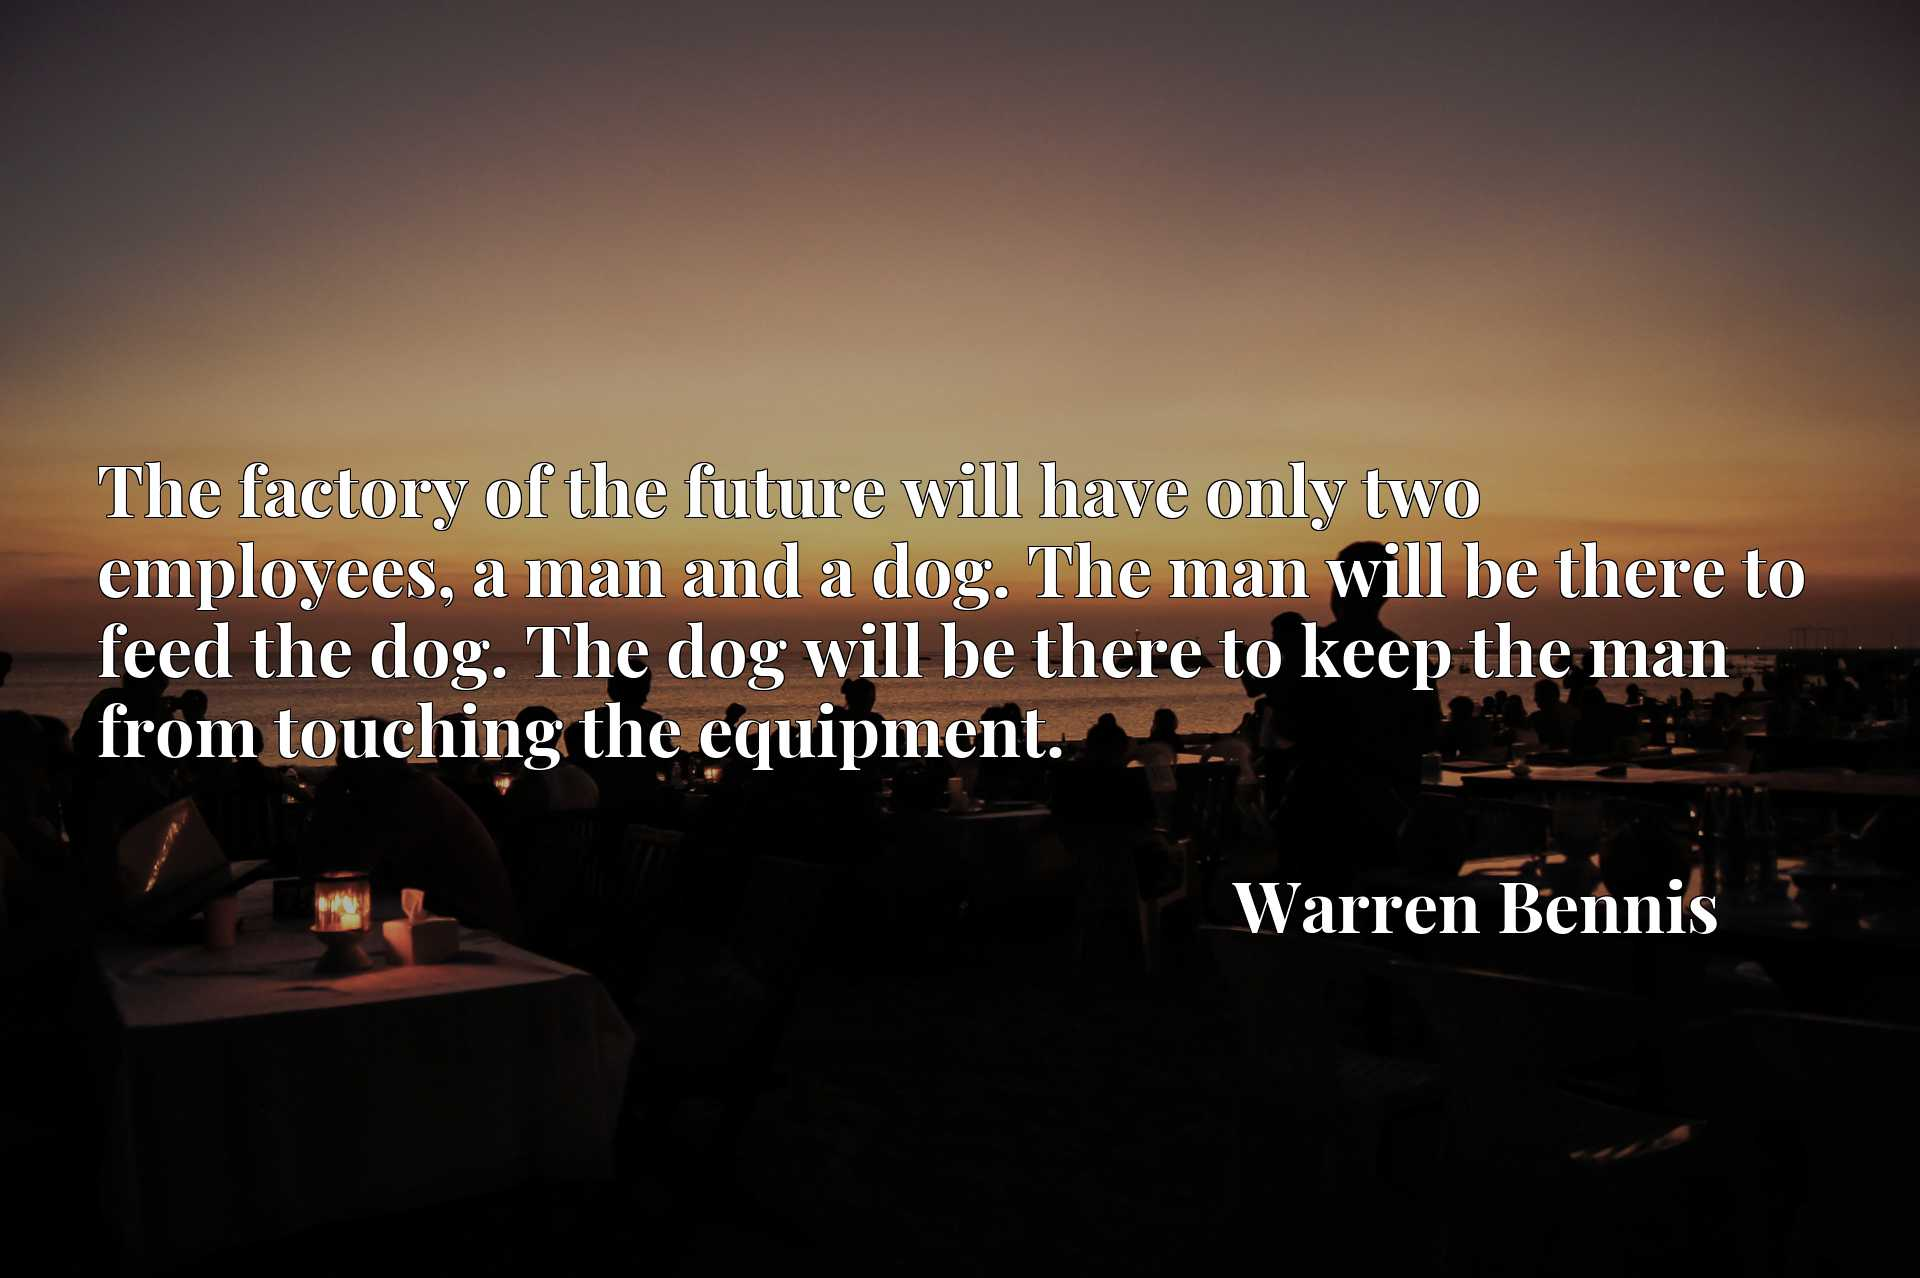 The factory of the future will have only two employees, a man and a dog. The man will be there to feed the dog. The dog will be there to keep the man from touching the equipment.